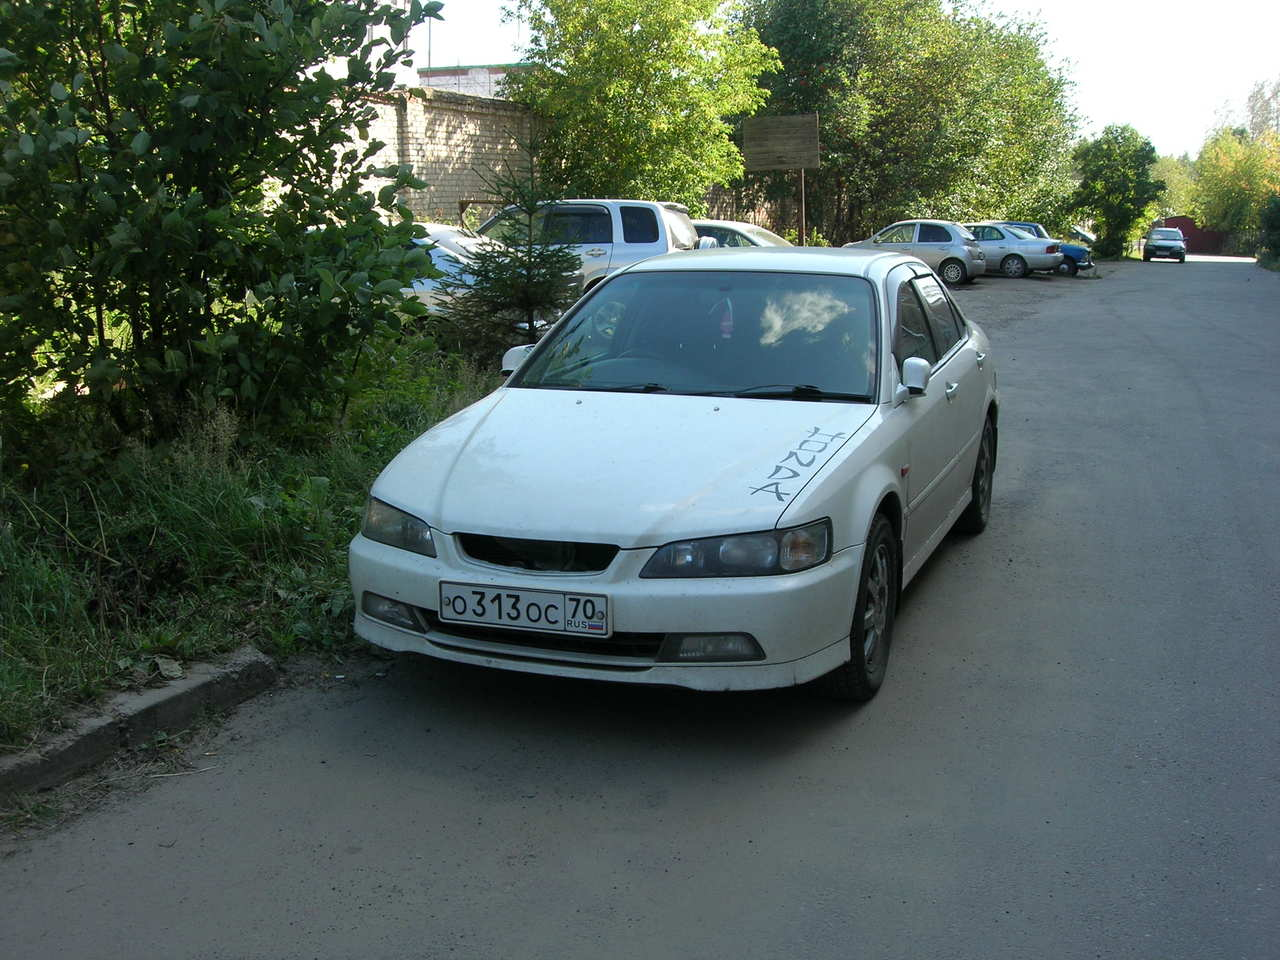 Used 2004 partia nowości bet at home bet at home tarda en Aplikacja poker bet at home pagar Honda Accord